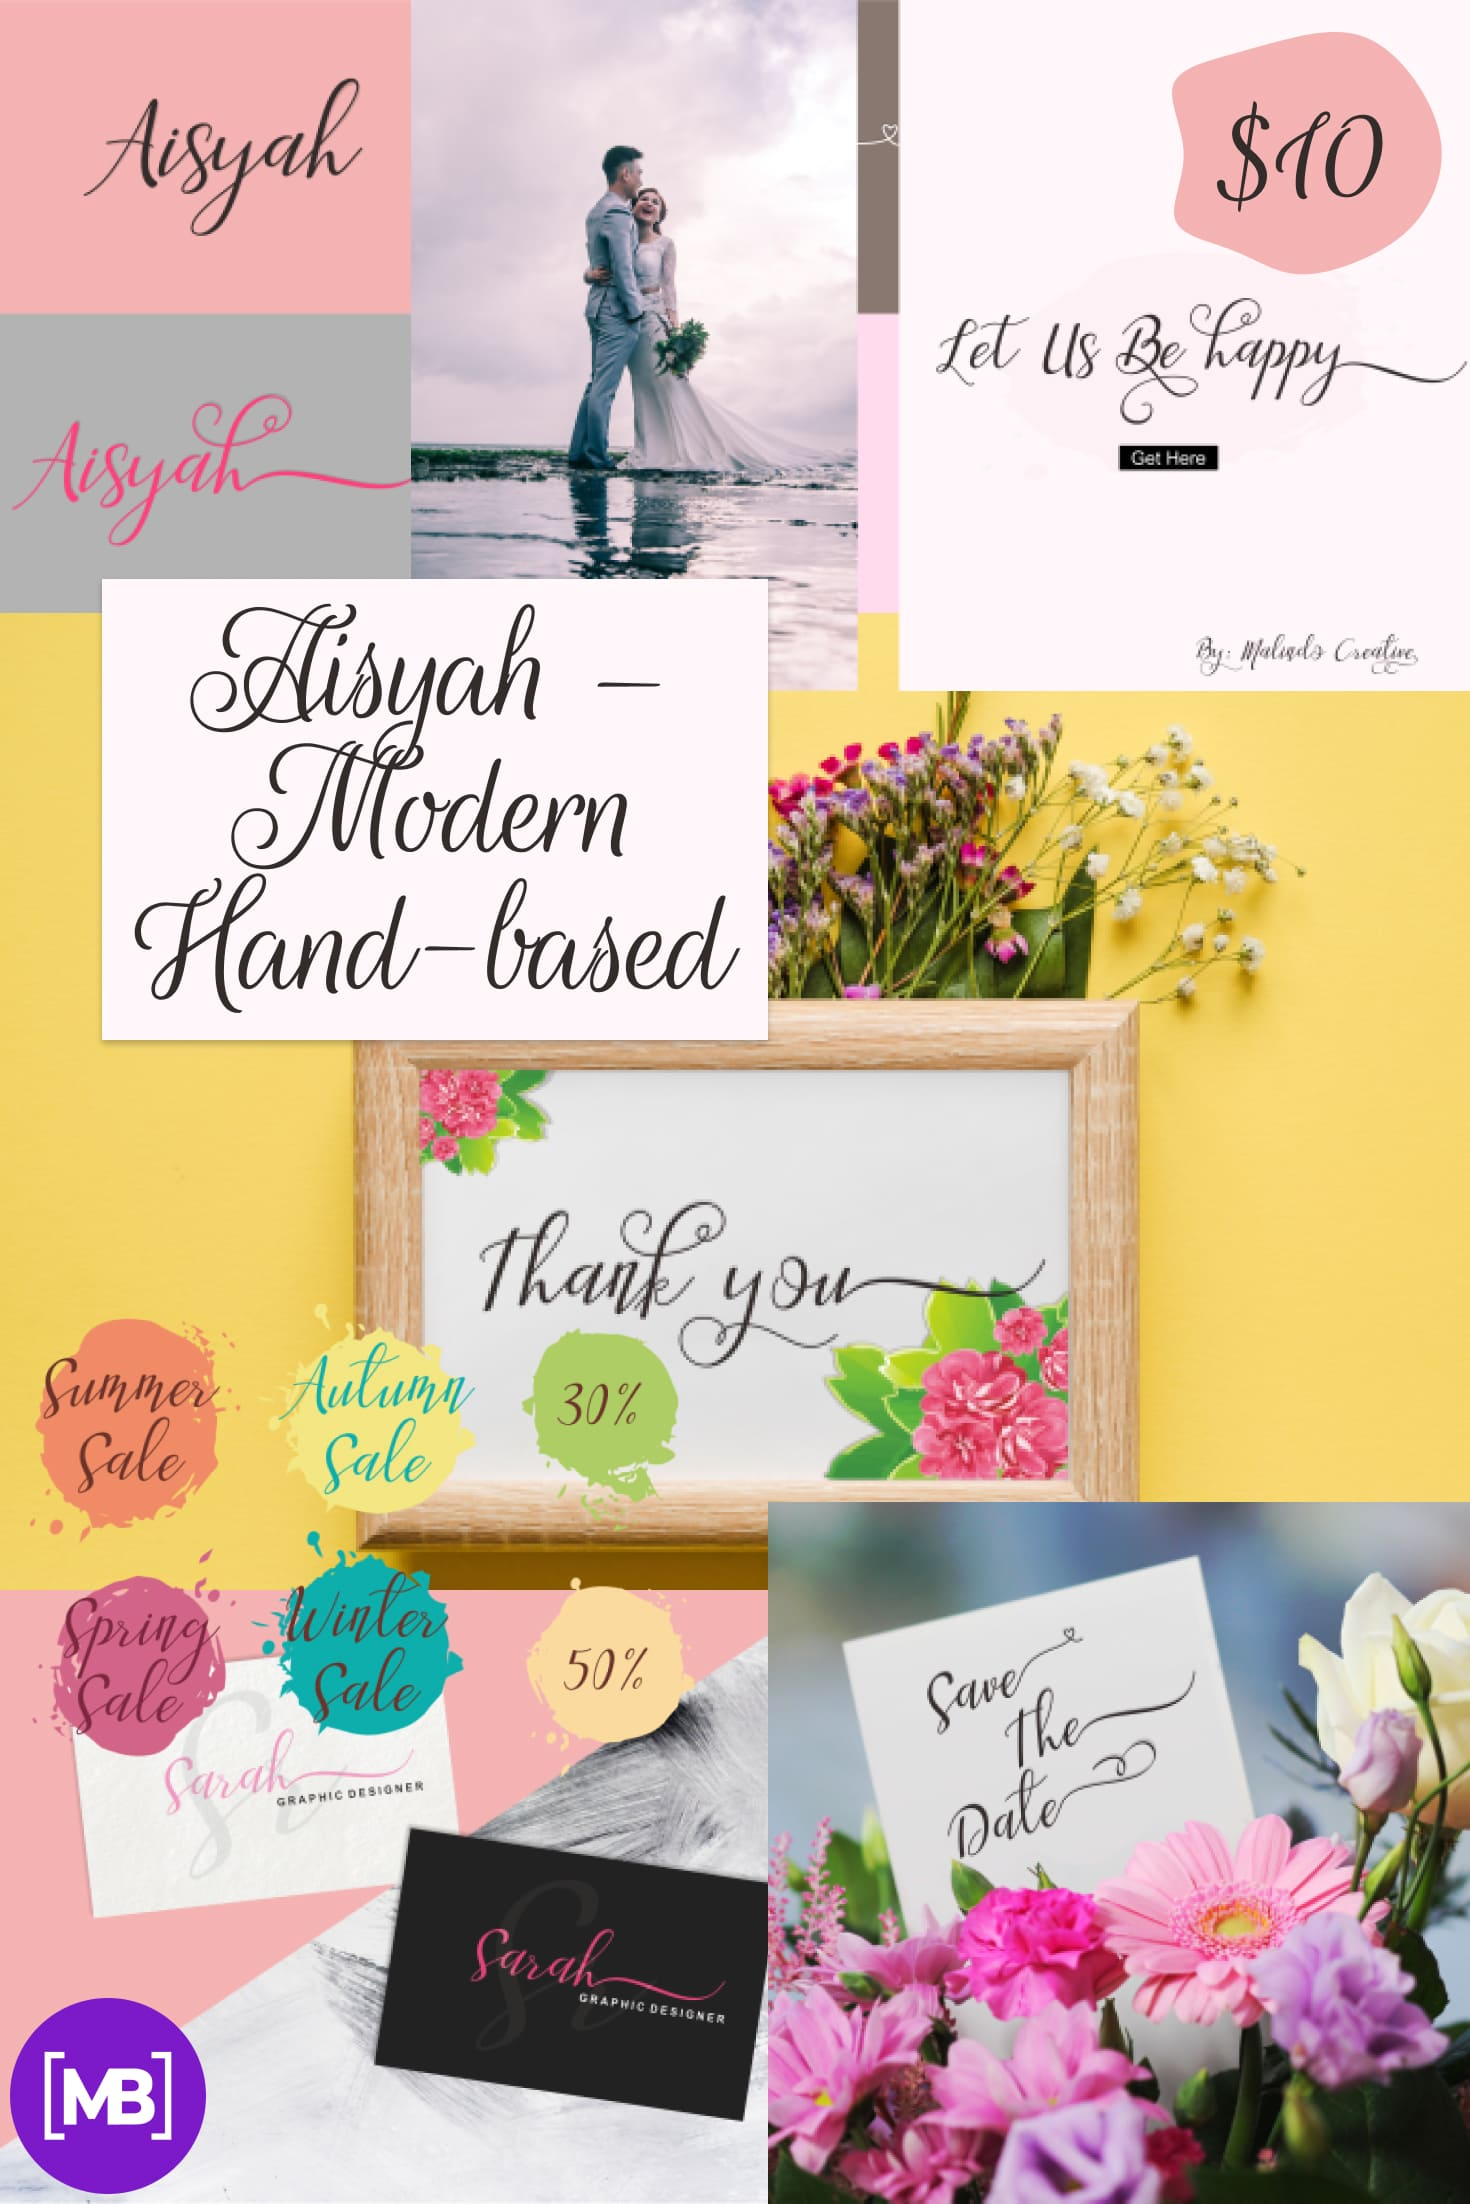 Aisyah - Modern Hand-based Typography - $10. Collage Image.